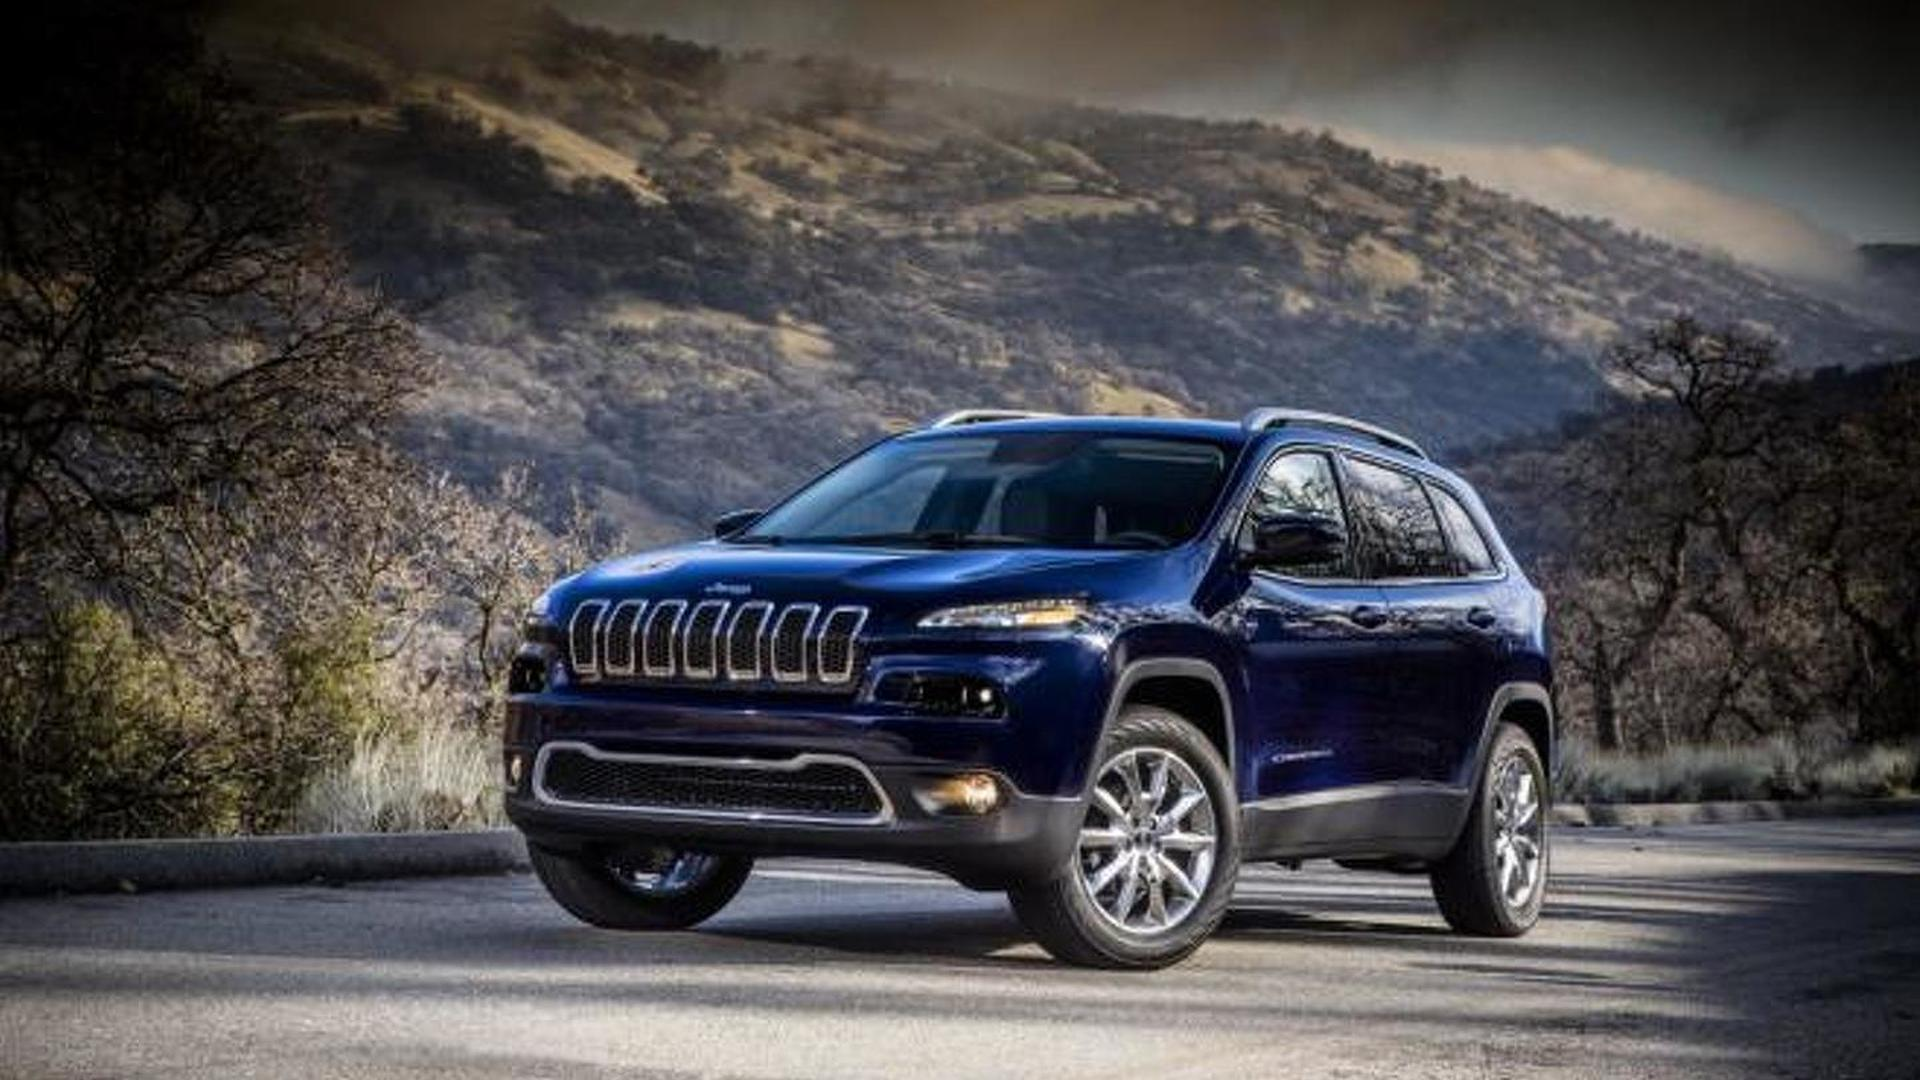 Jeep Cherokee SRT in the works - report